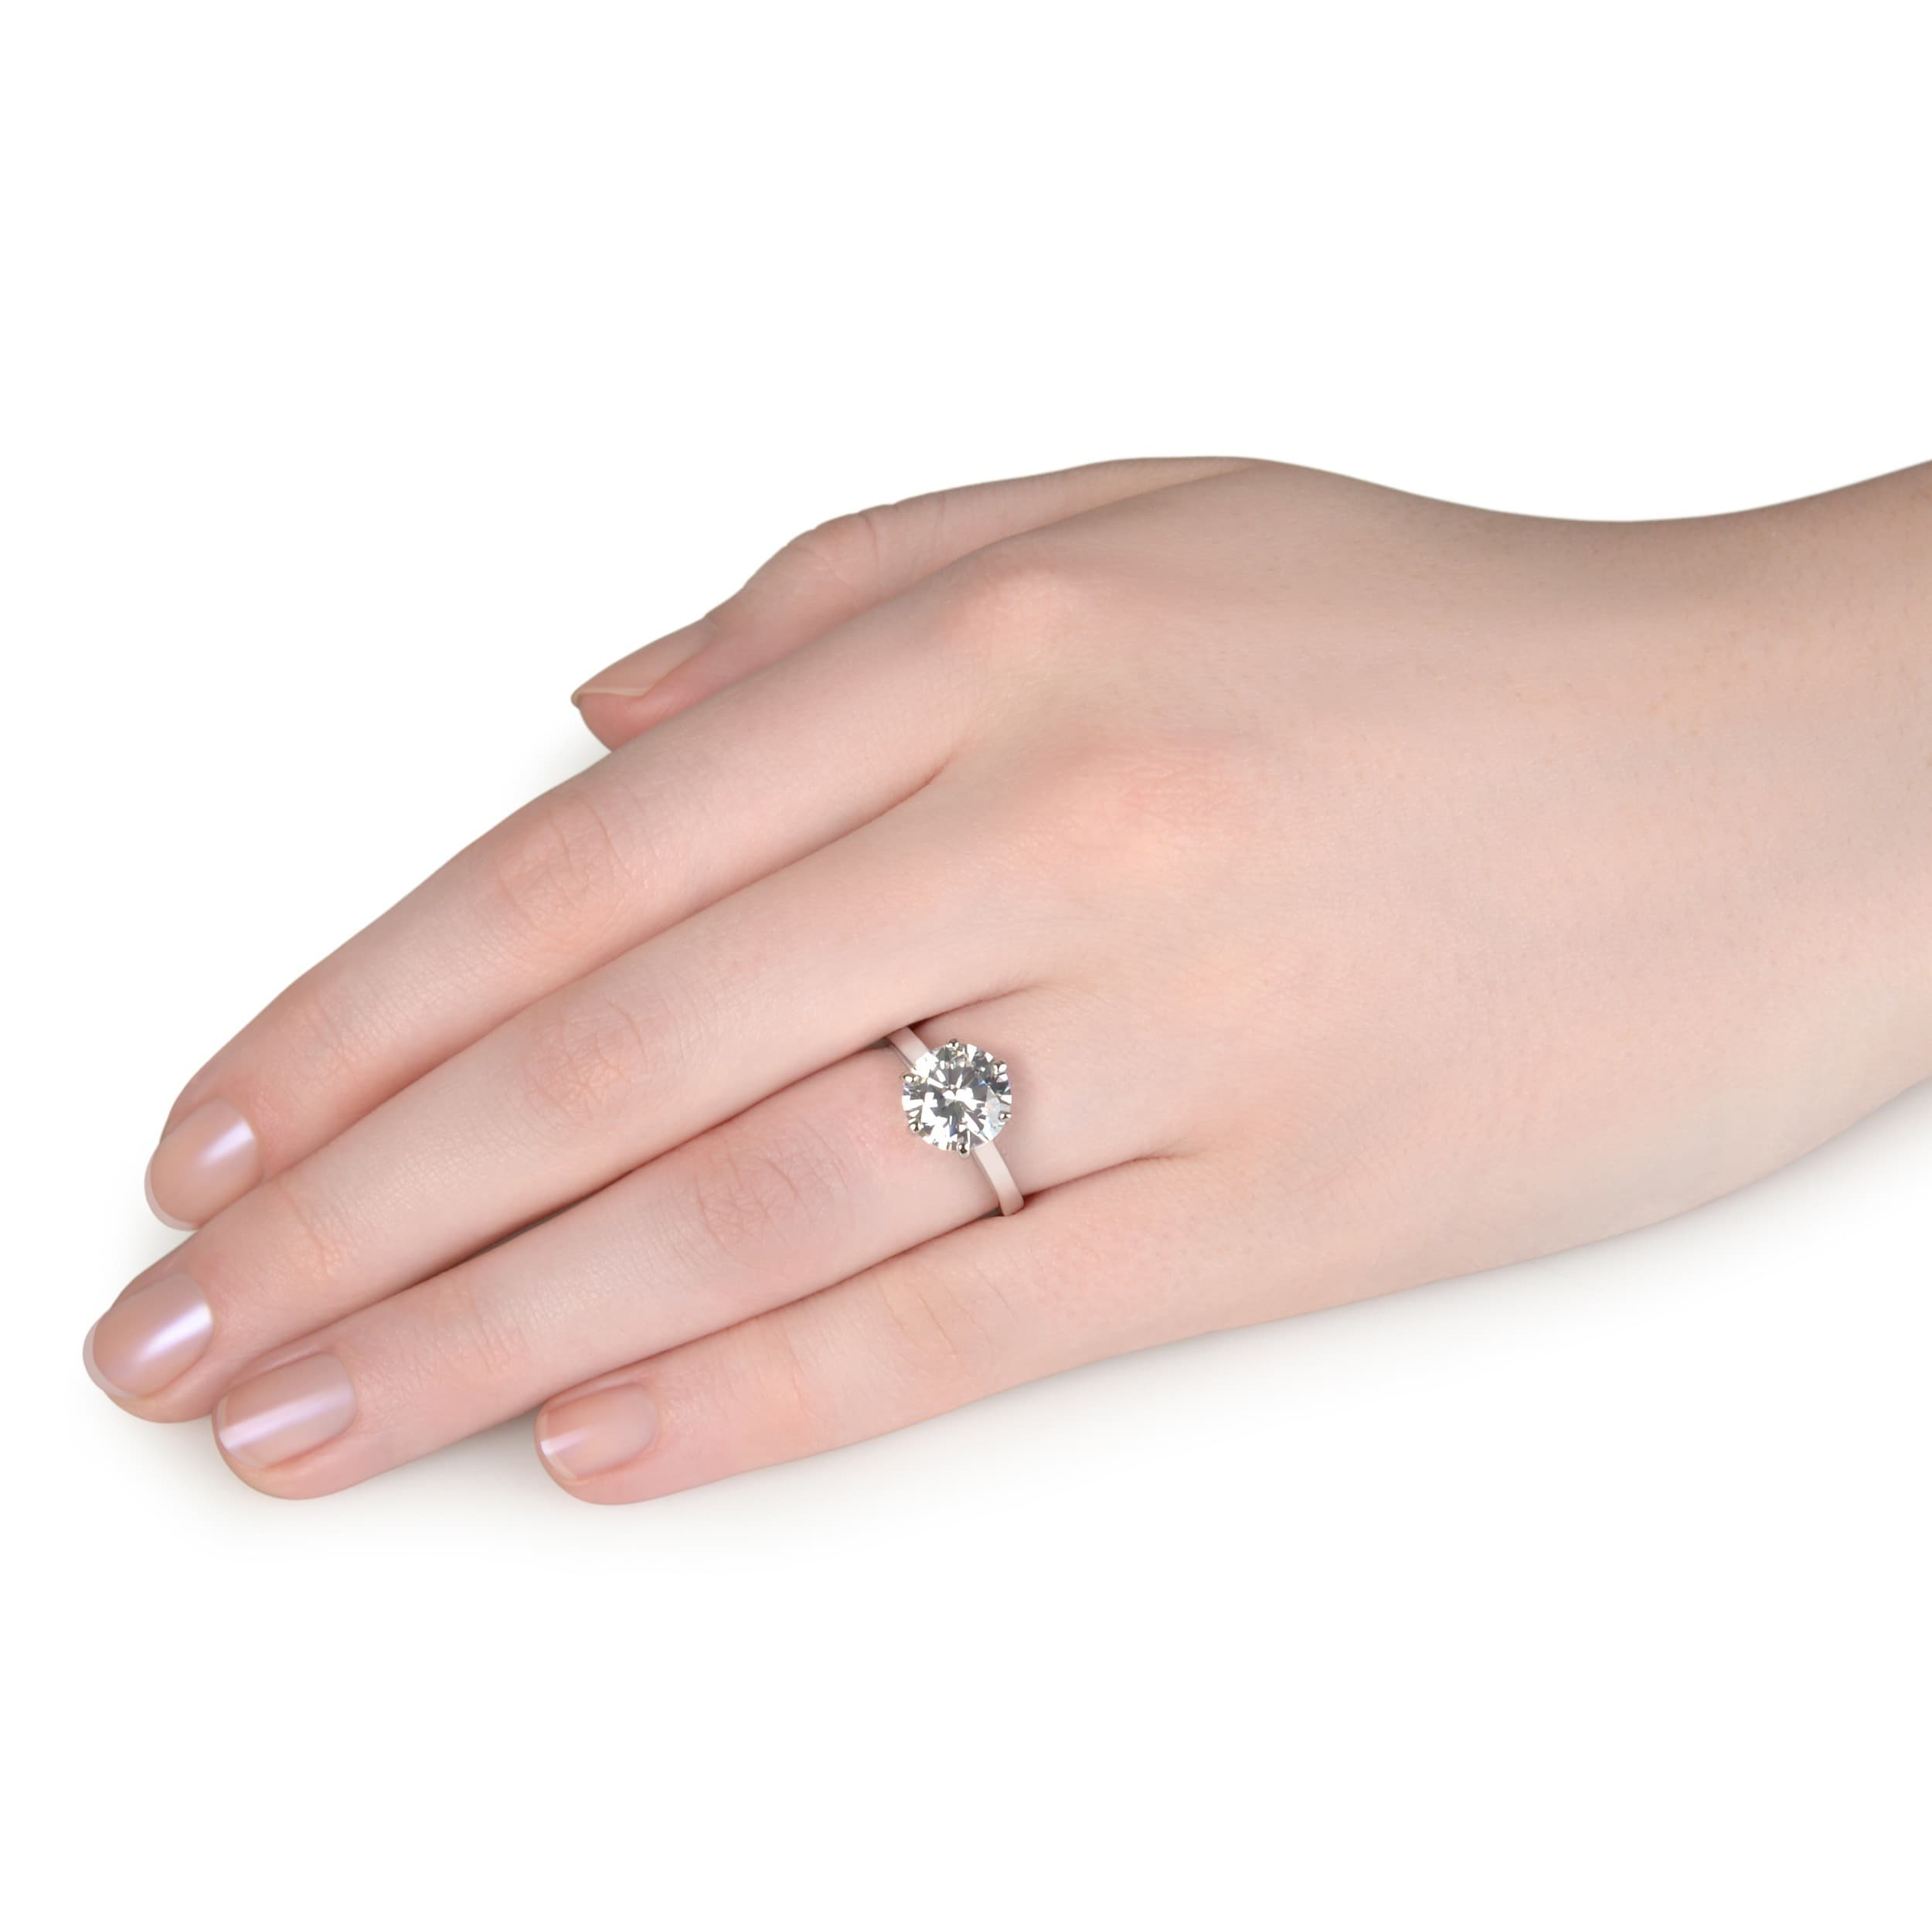 Shop Sterling Silver Cubic Zirconia Solitaire Wedding Ring - Free ...